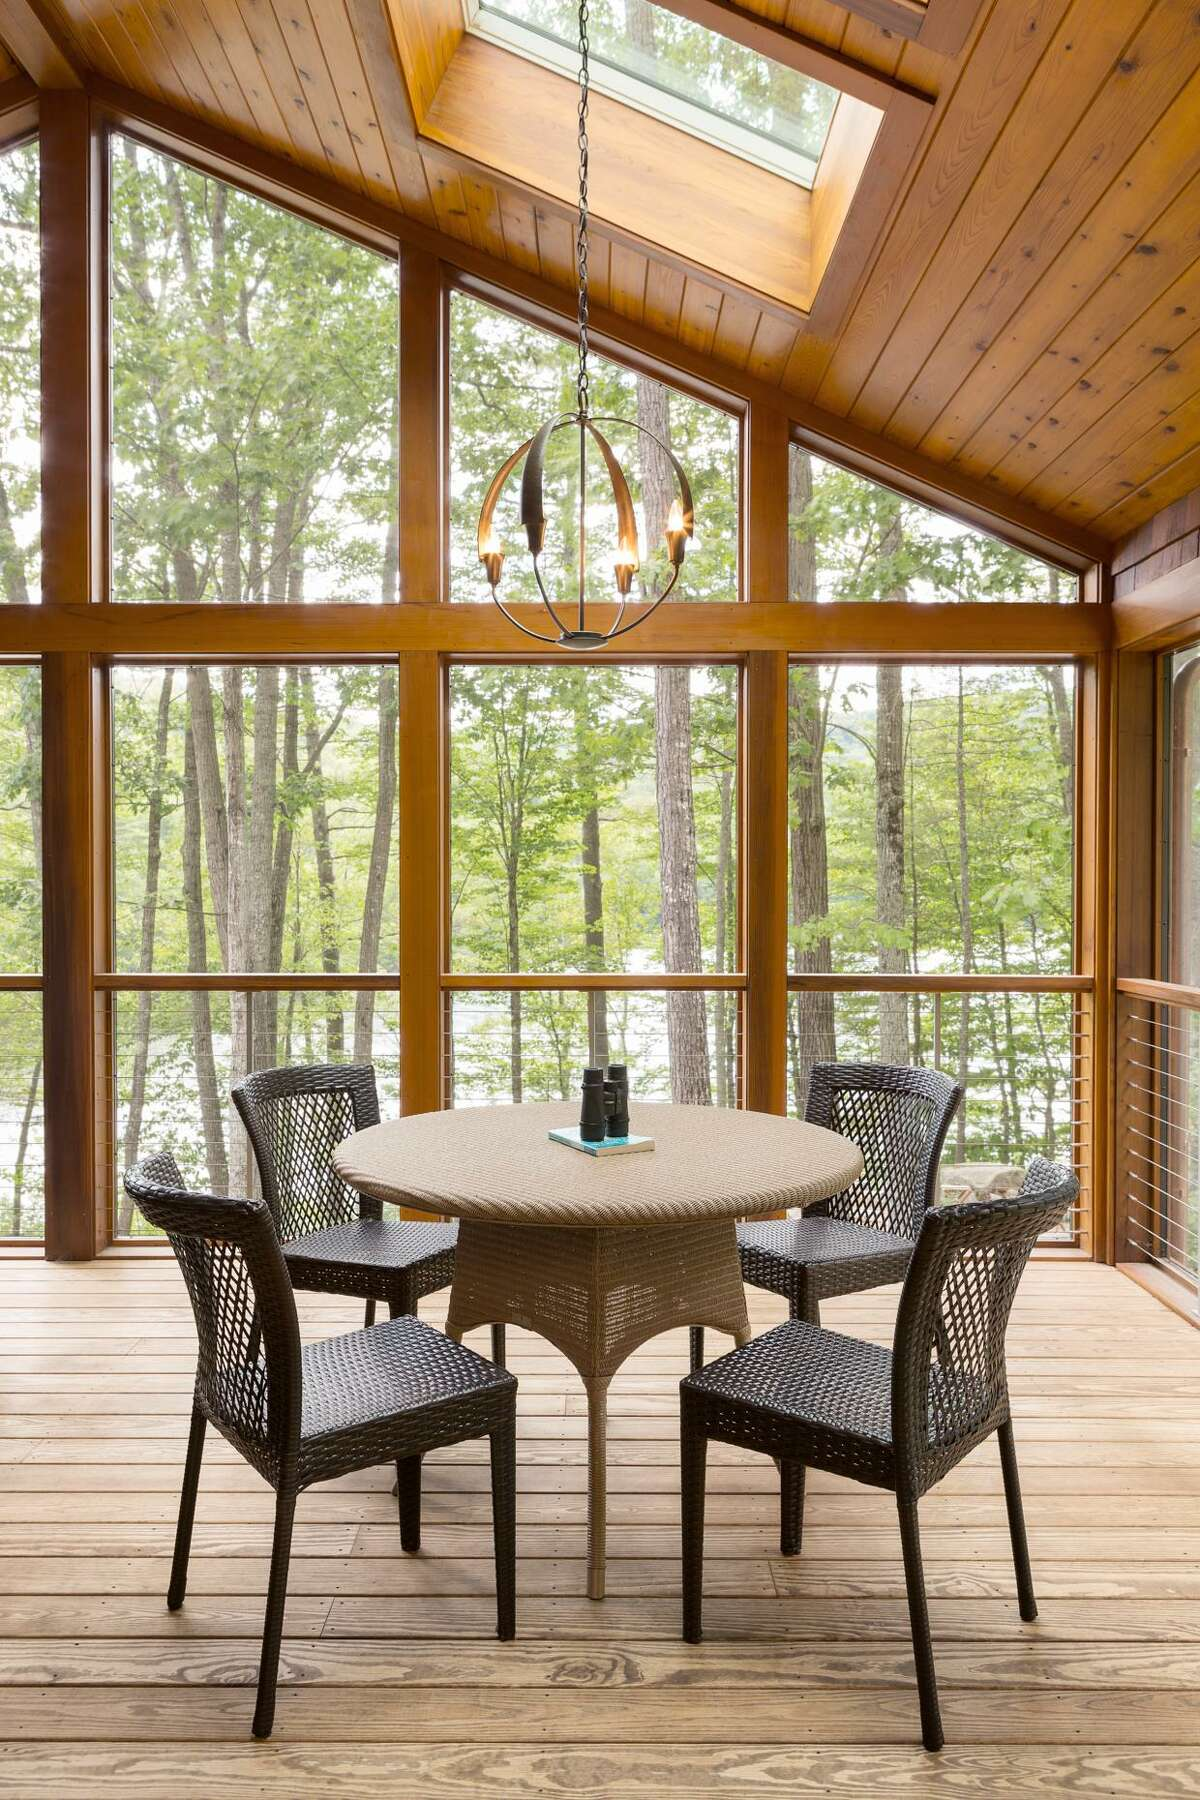 A true link between interior comforts and the great outdoors, this porch from Cambridge, Mass.-based Leslie Saul & Associates features skylights and wraparound windows that allow for stunning views and plenty of natural light.